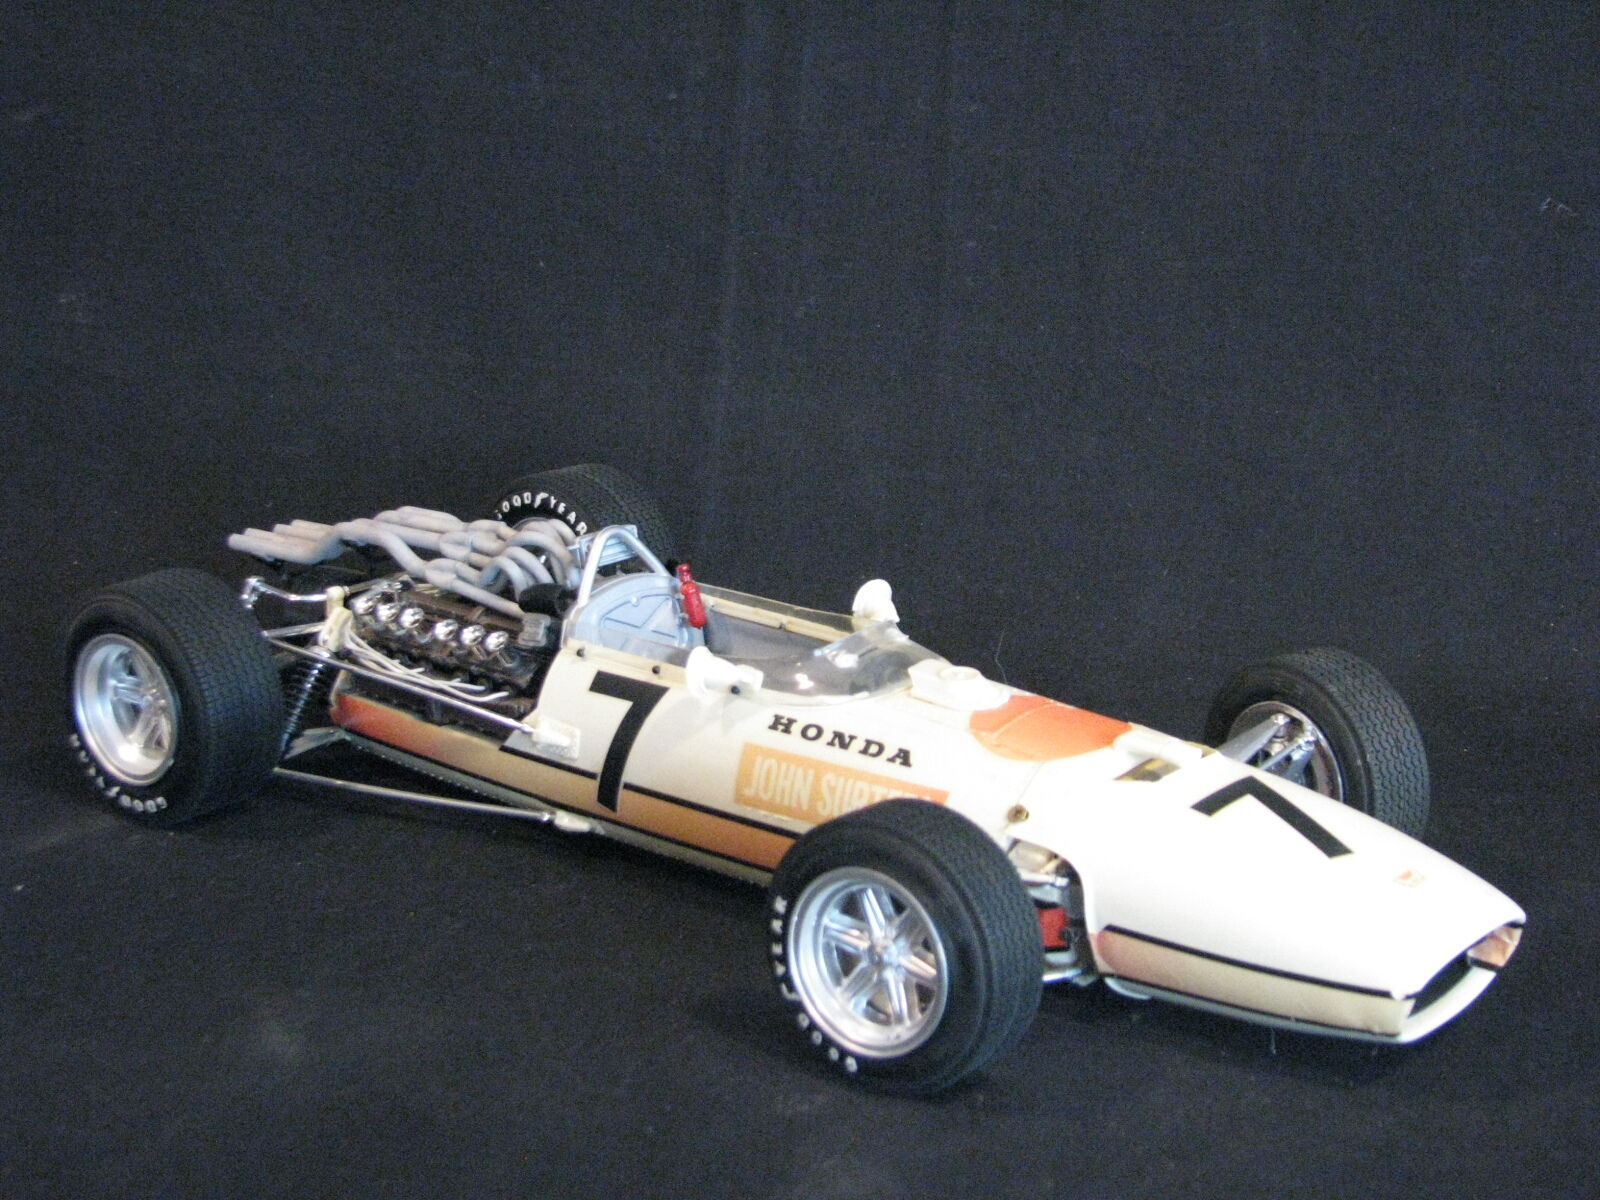 Tamiya Honda RA273 1966 1 12  7 John Surtees (GBR) Built kit